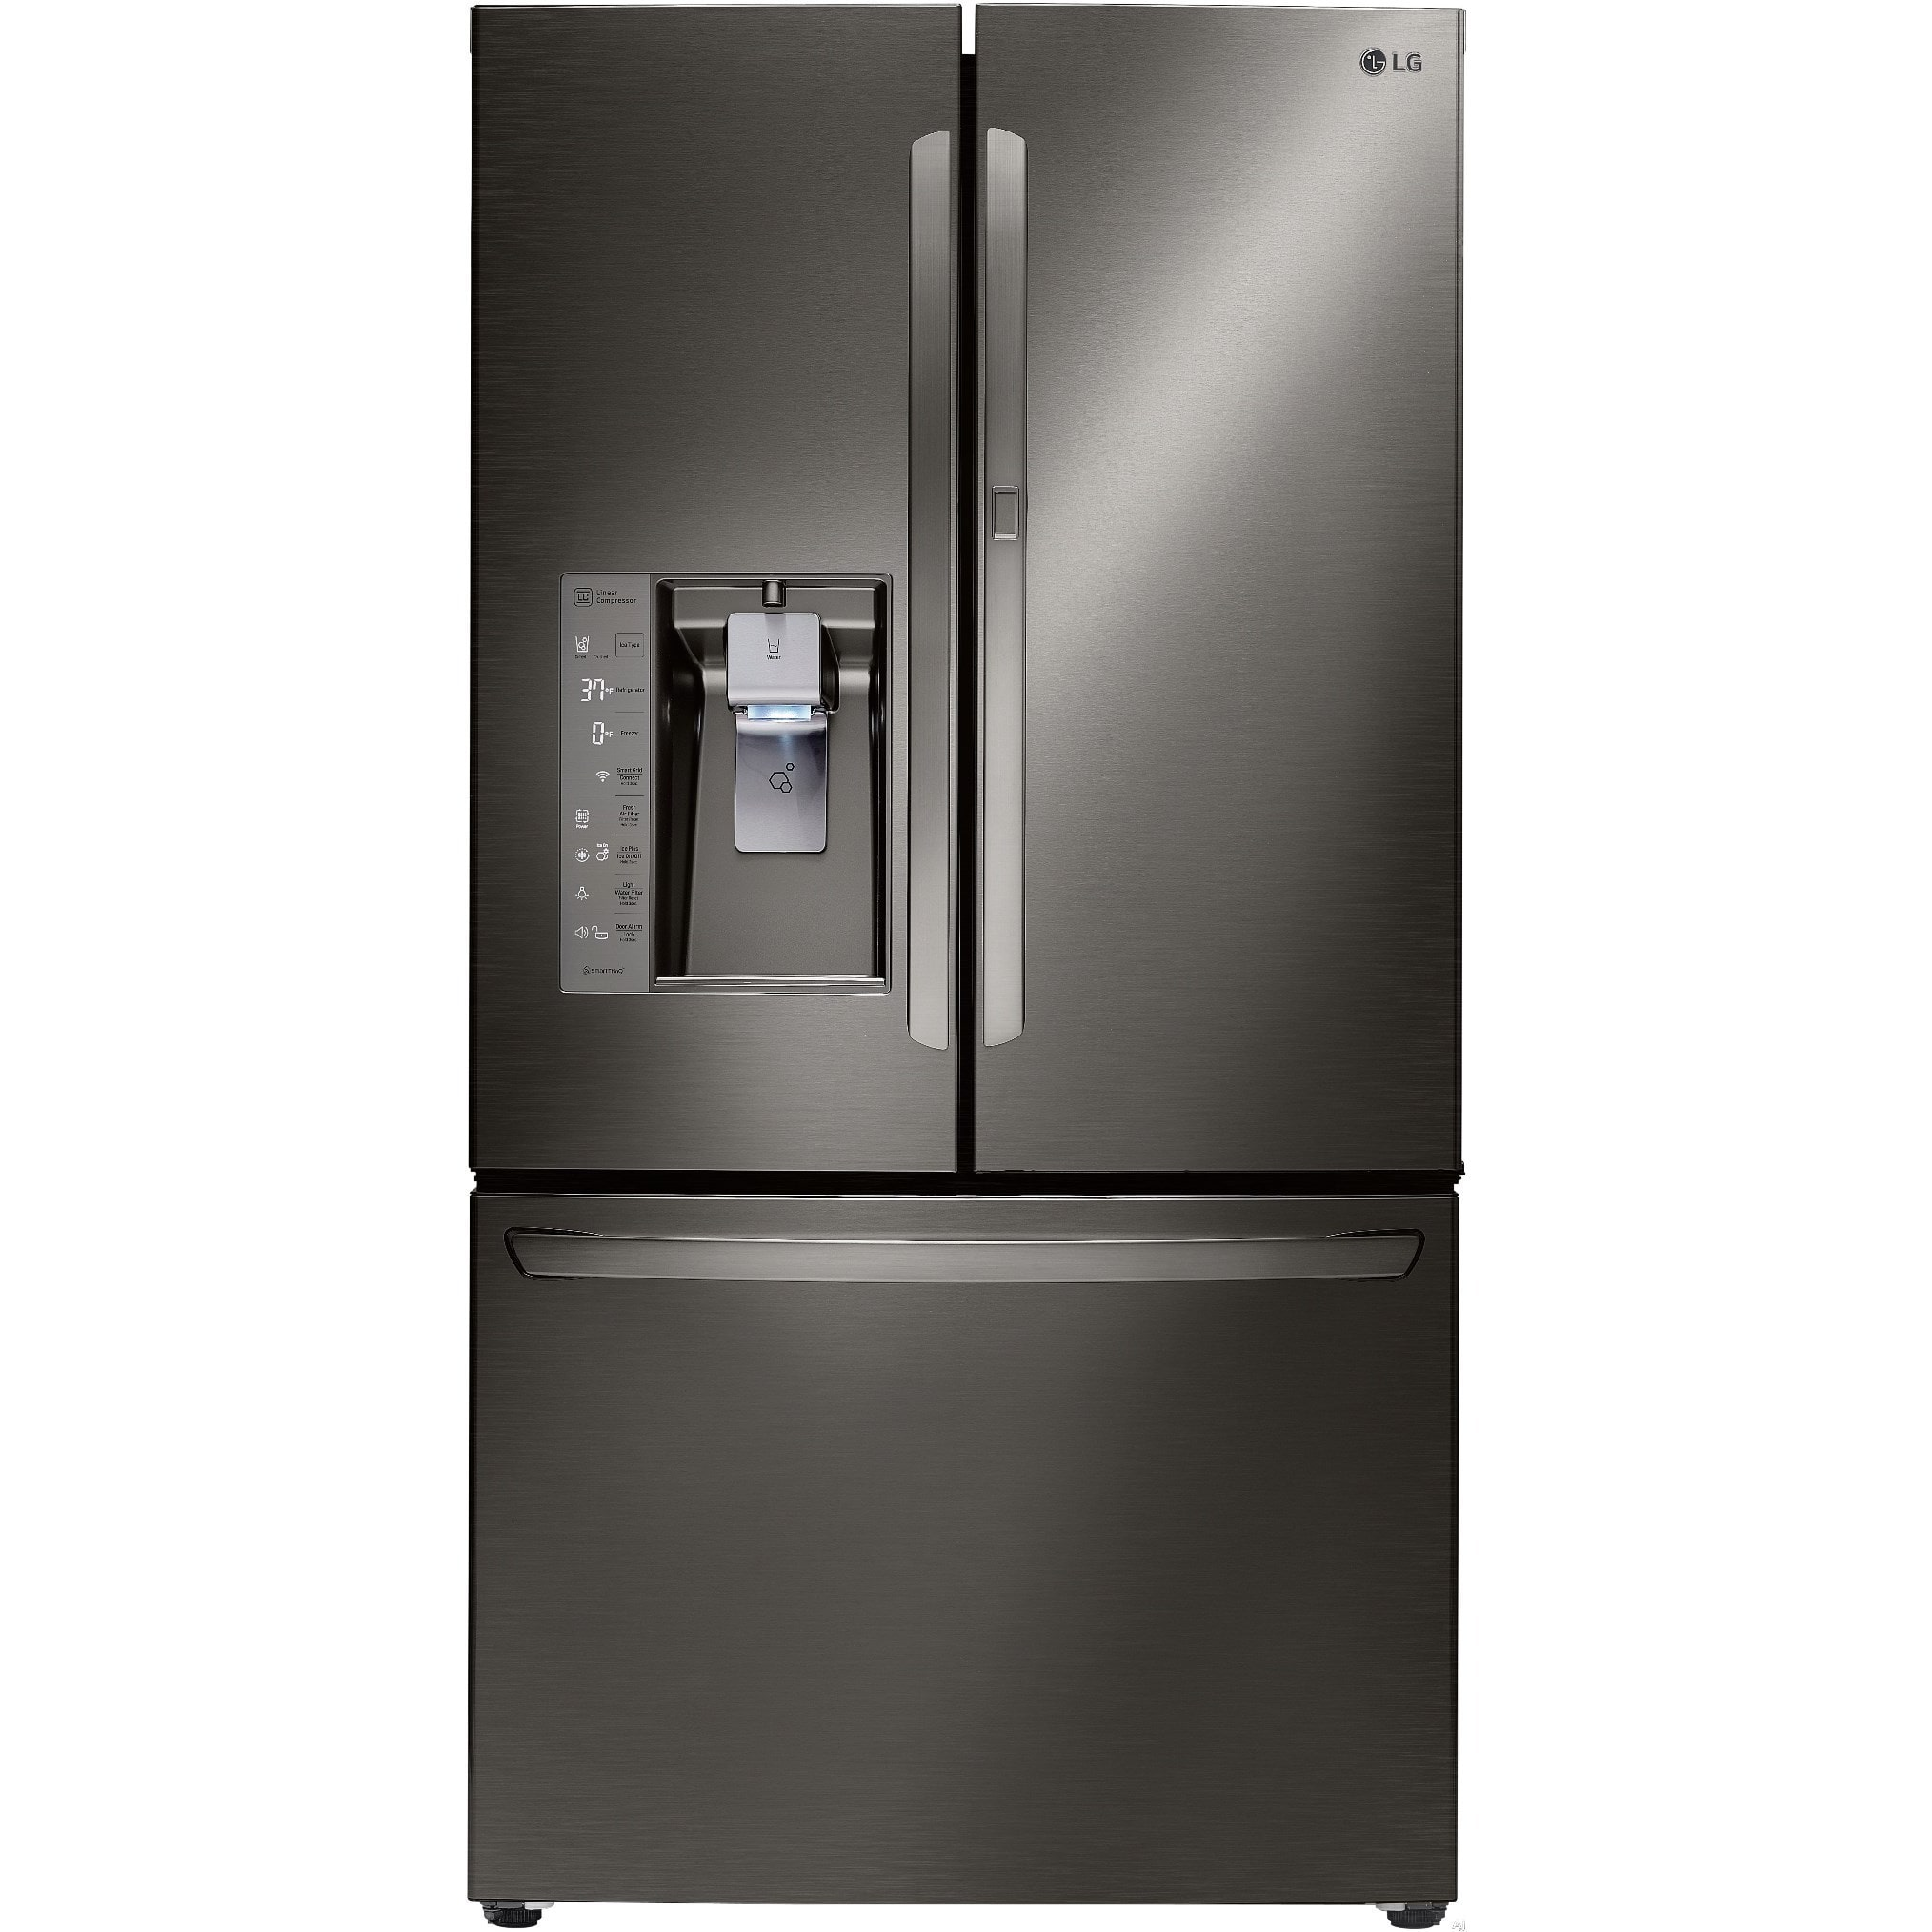 LG Diamond Collection 29.6 Cubic Feet French Door Refrigerator